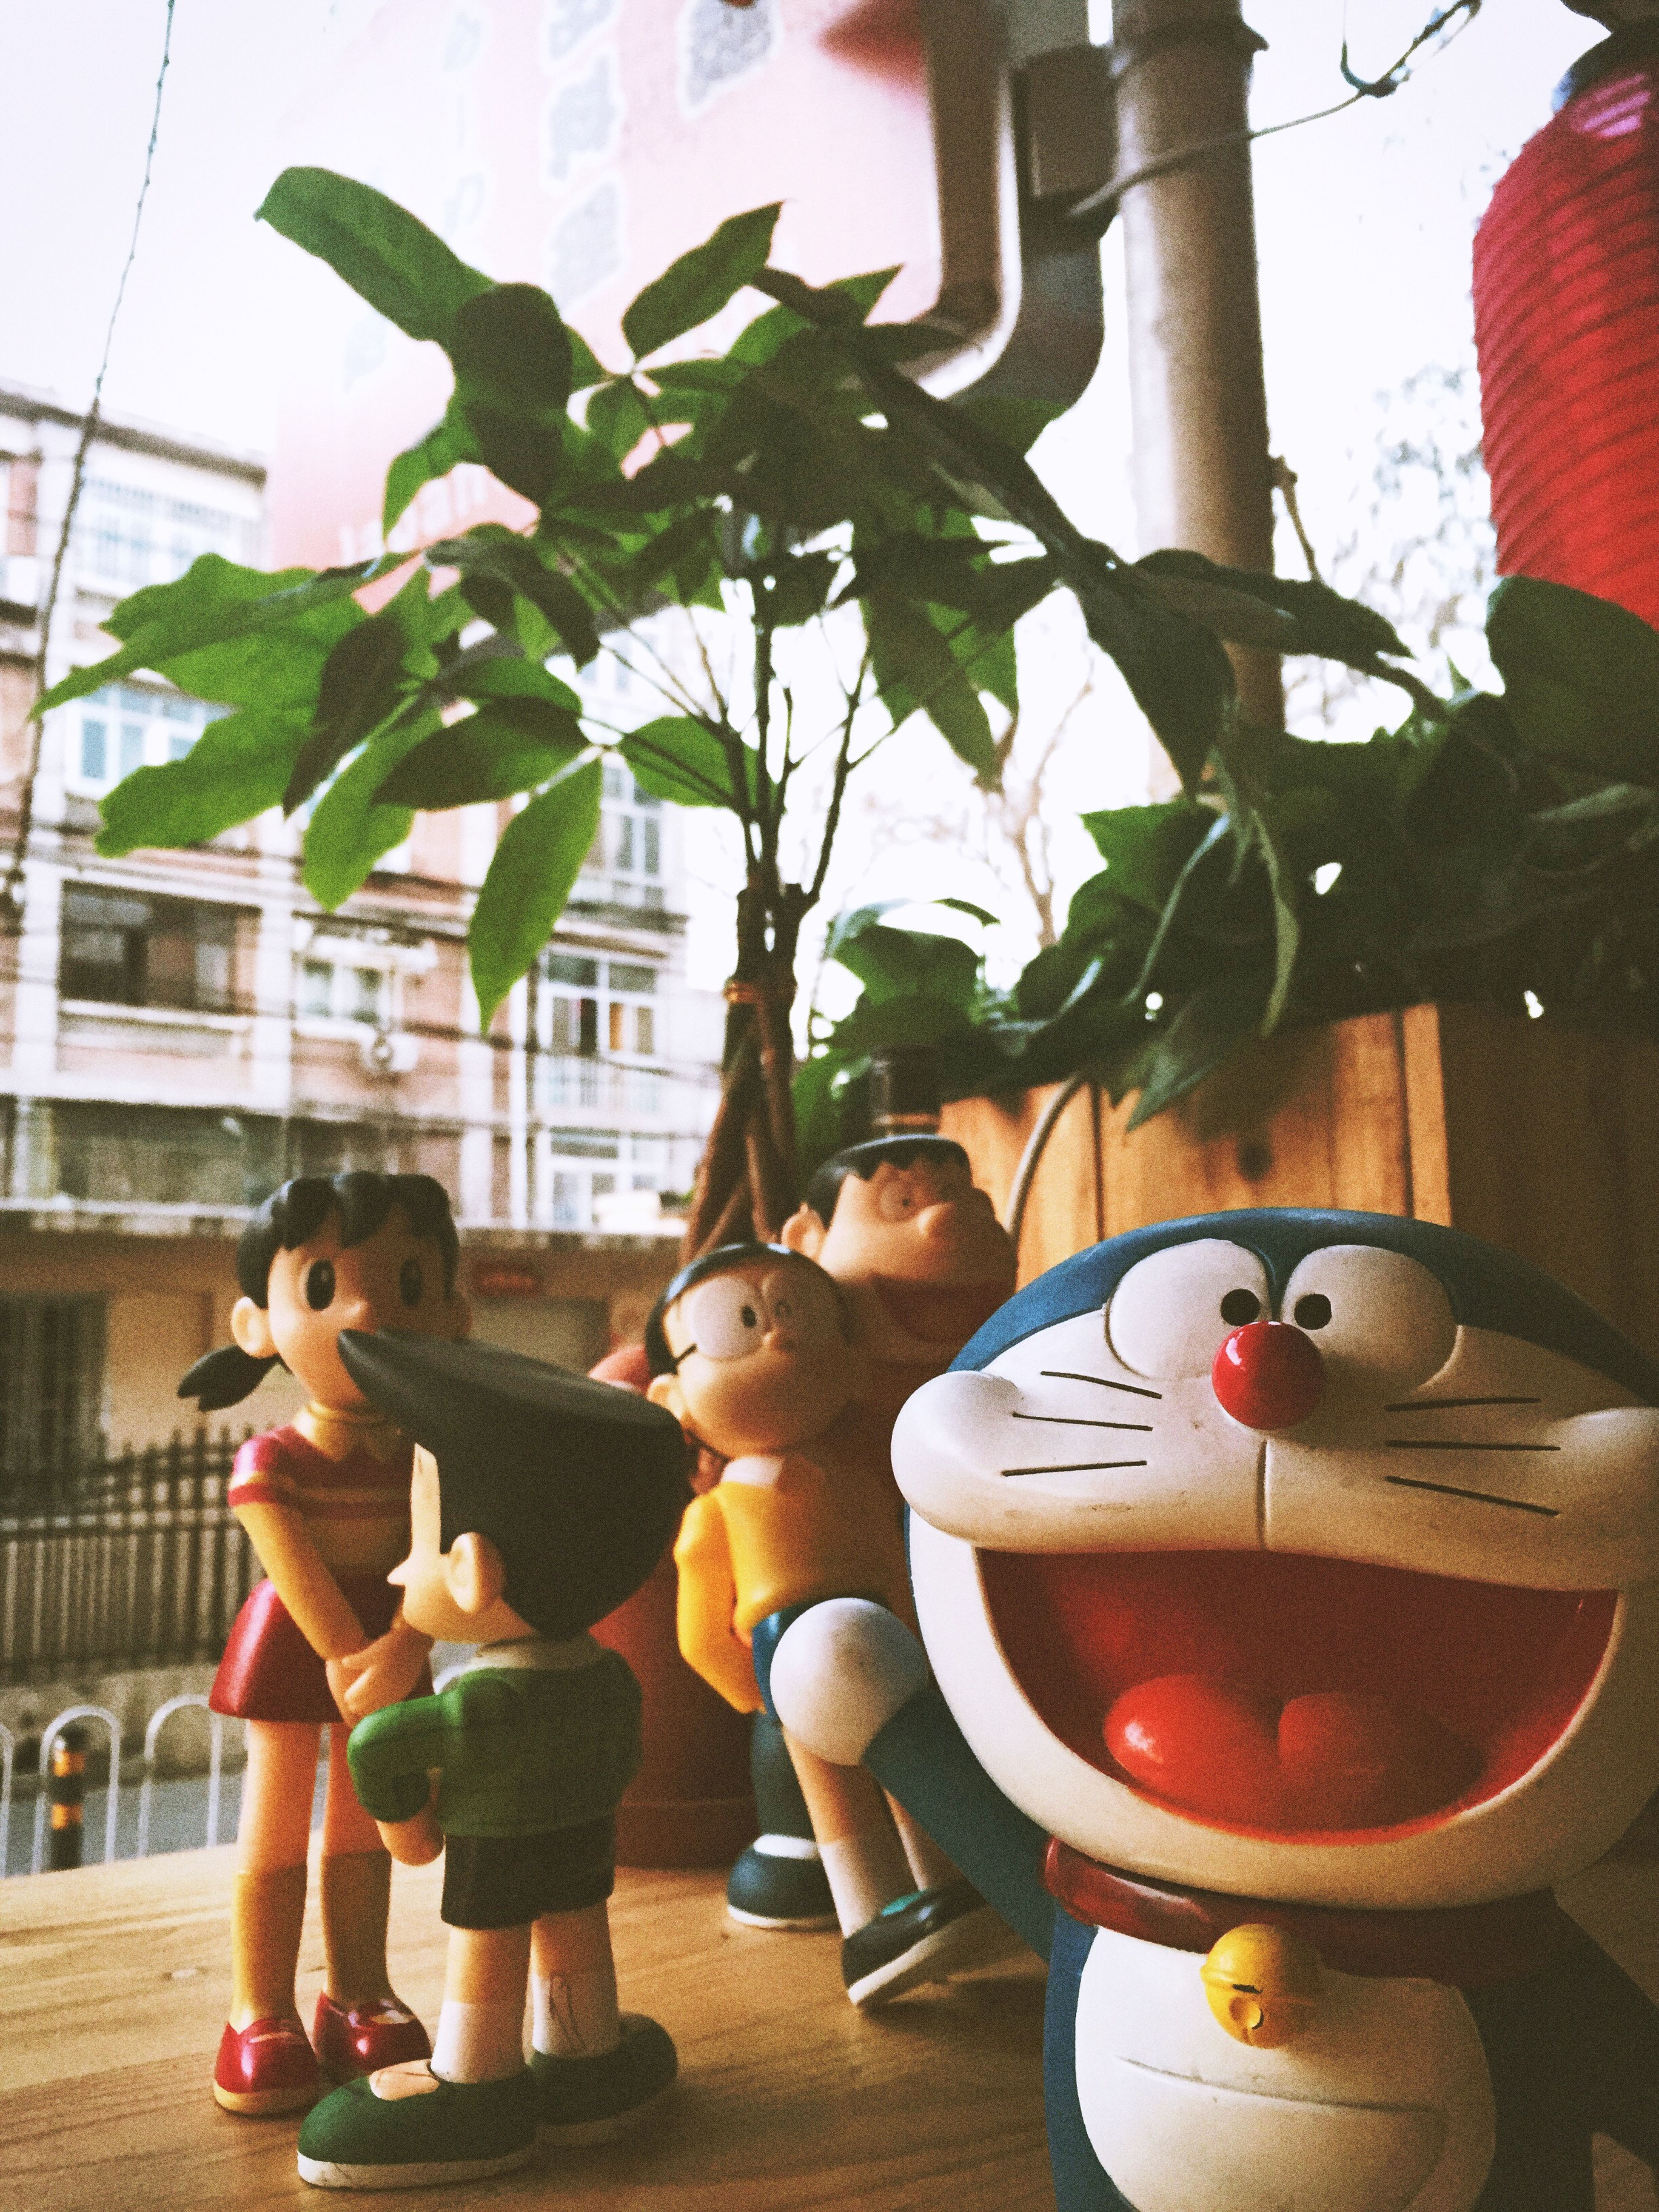 Udon Noodles Restaurant OpenEdit Cut Cute Smile Cartoon Hanging Out